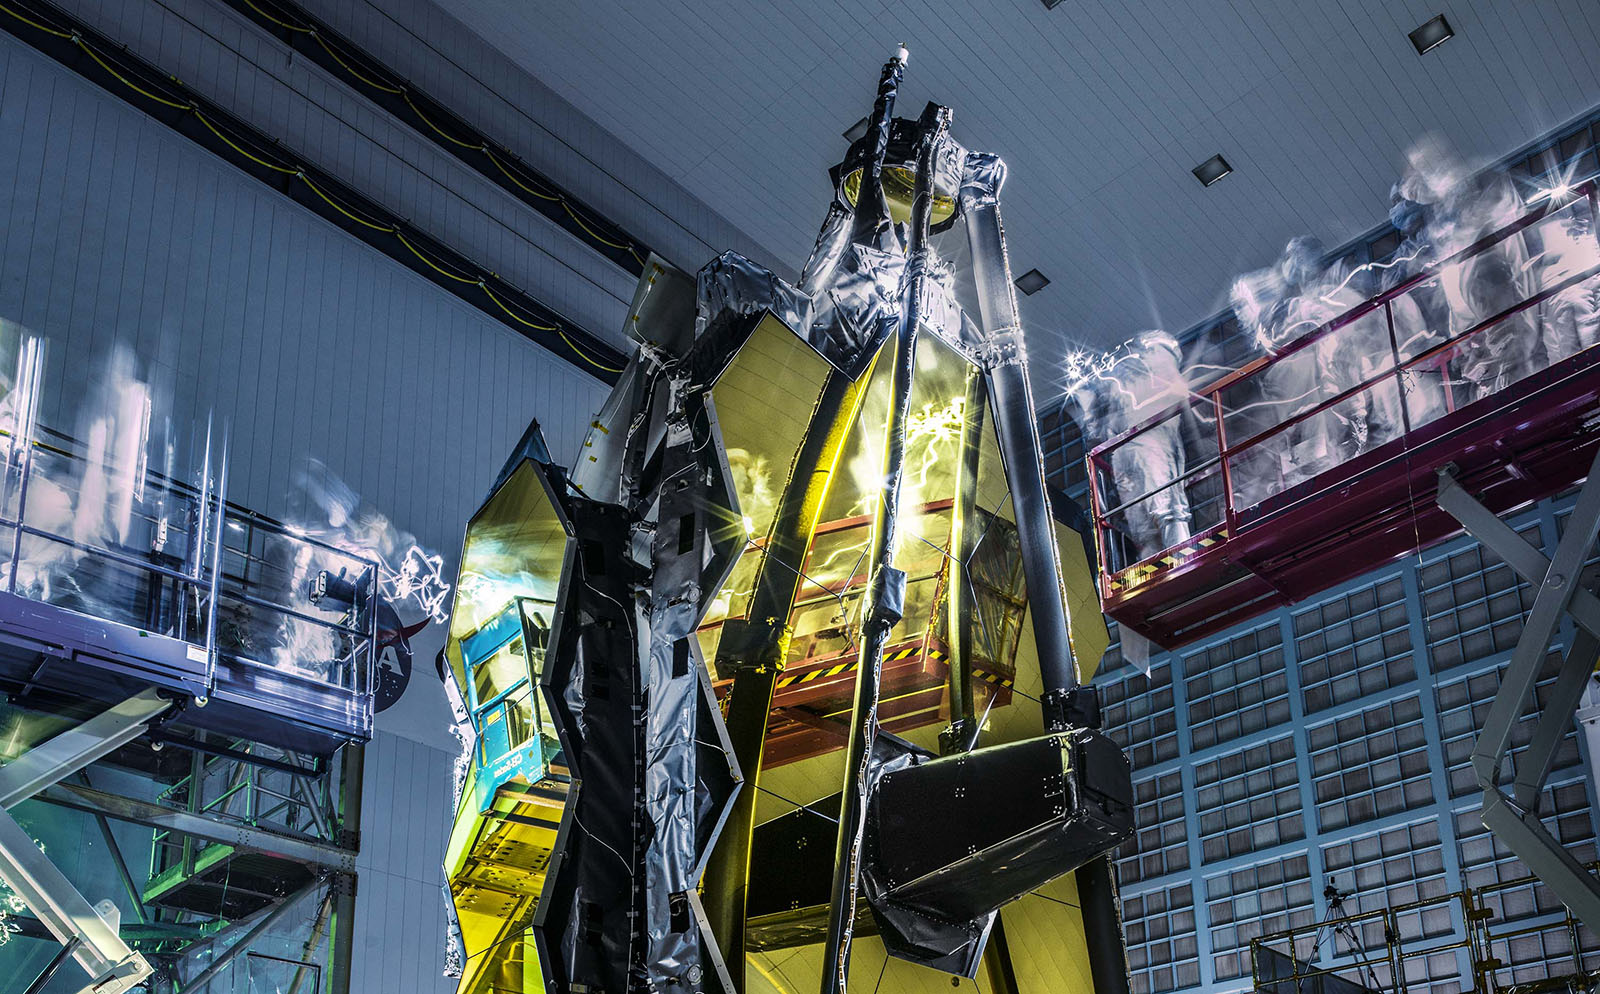 Lights out inspection of the James Webb Space Telescope